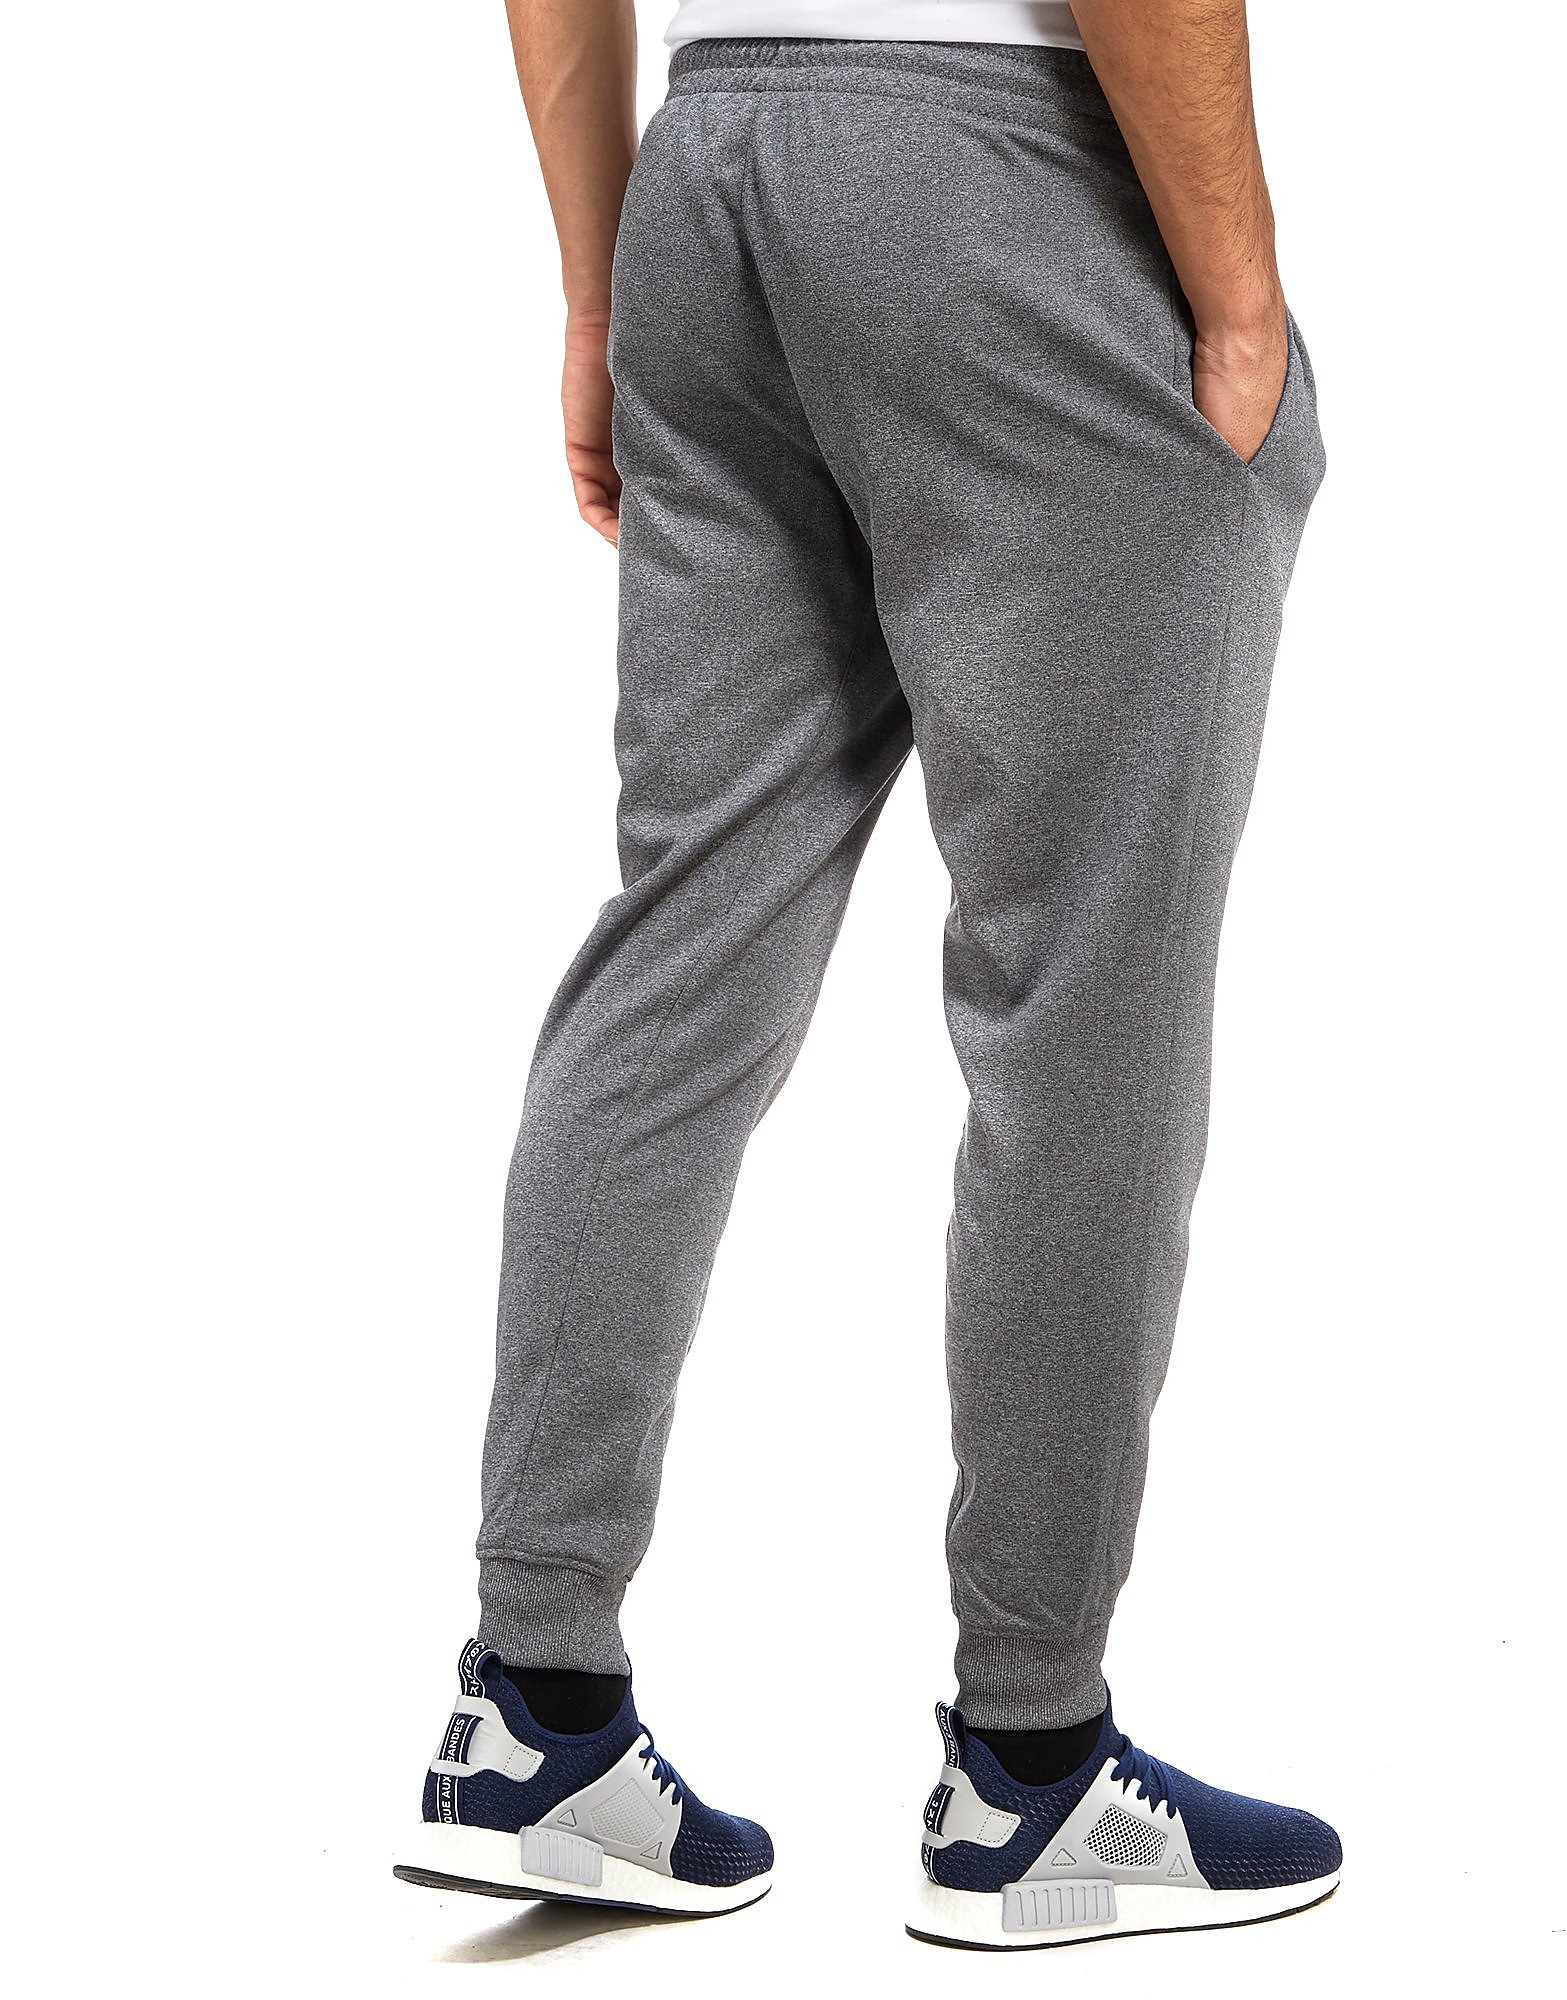 Lyle & Scott Finney Fleece Pants